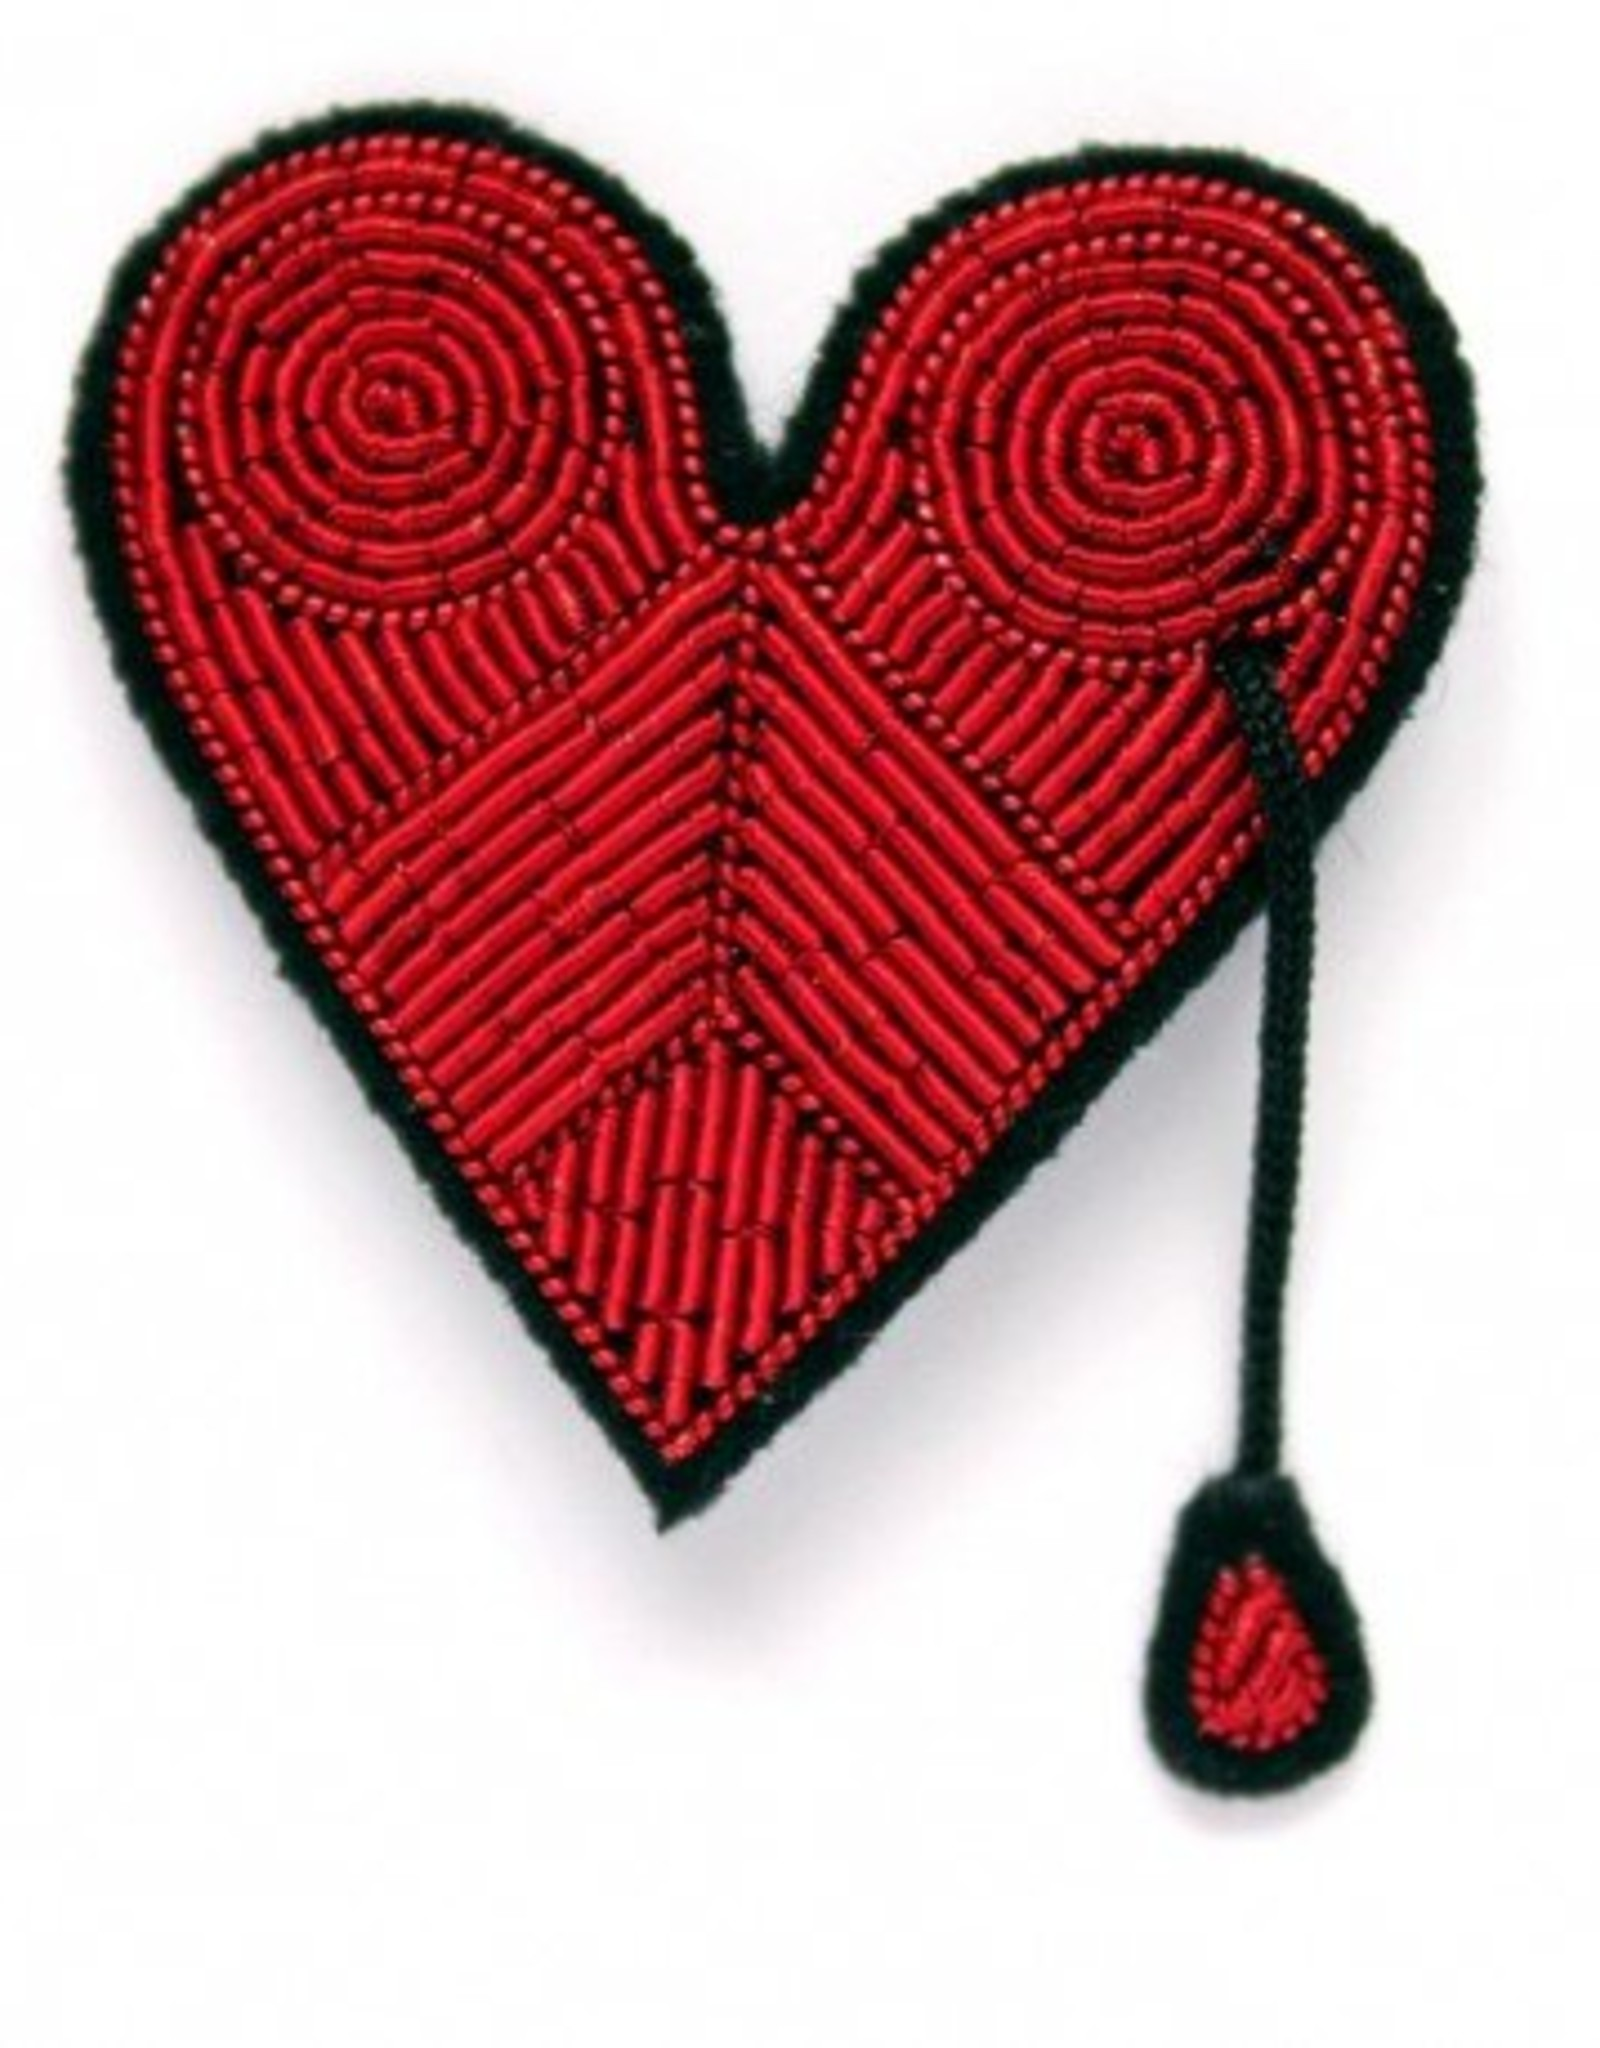 Macon & Lesquoy 'Injured Heart' Pin